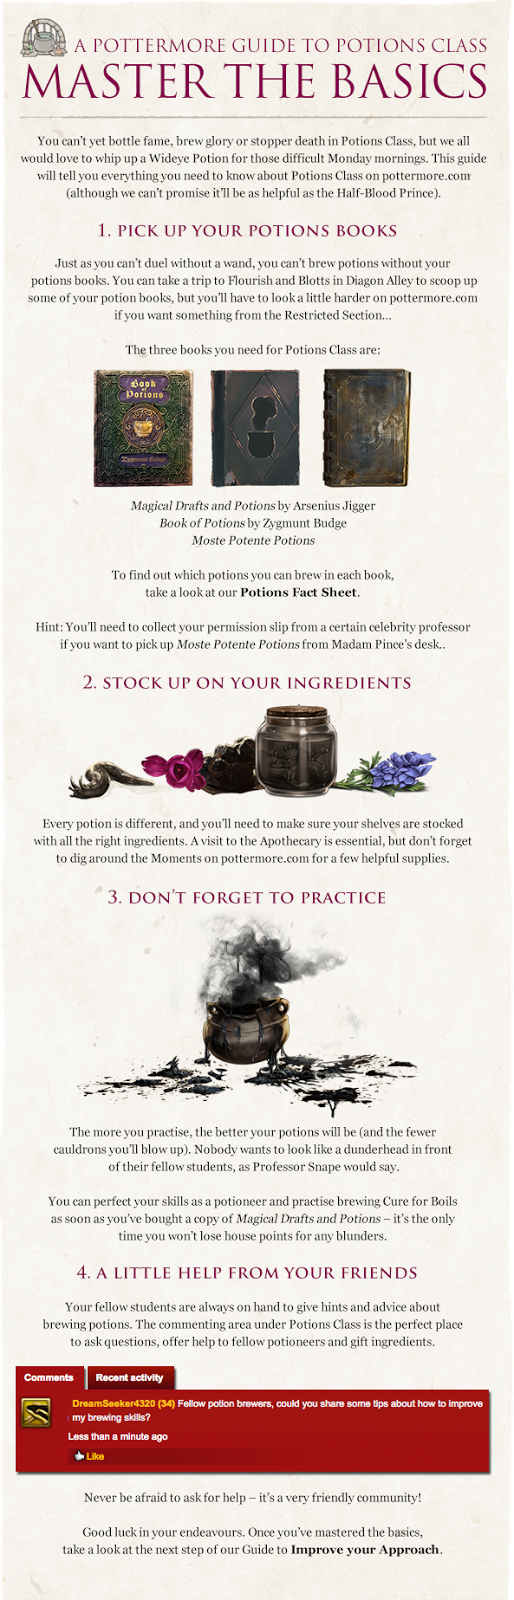 Pottermore Insider: Guide to Potions Class – Master the Basics